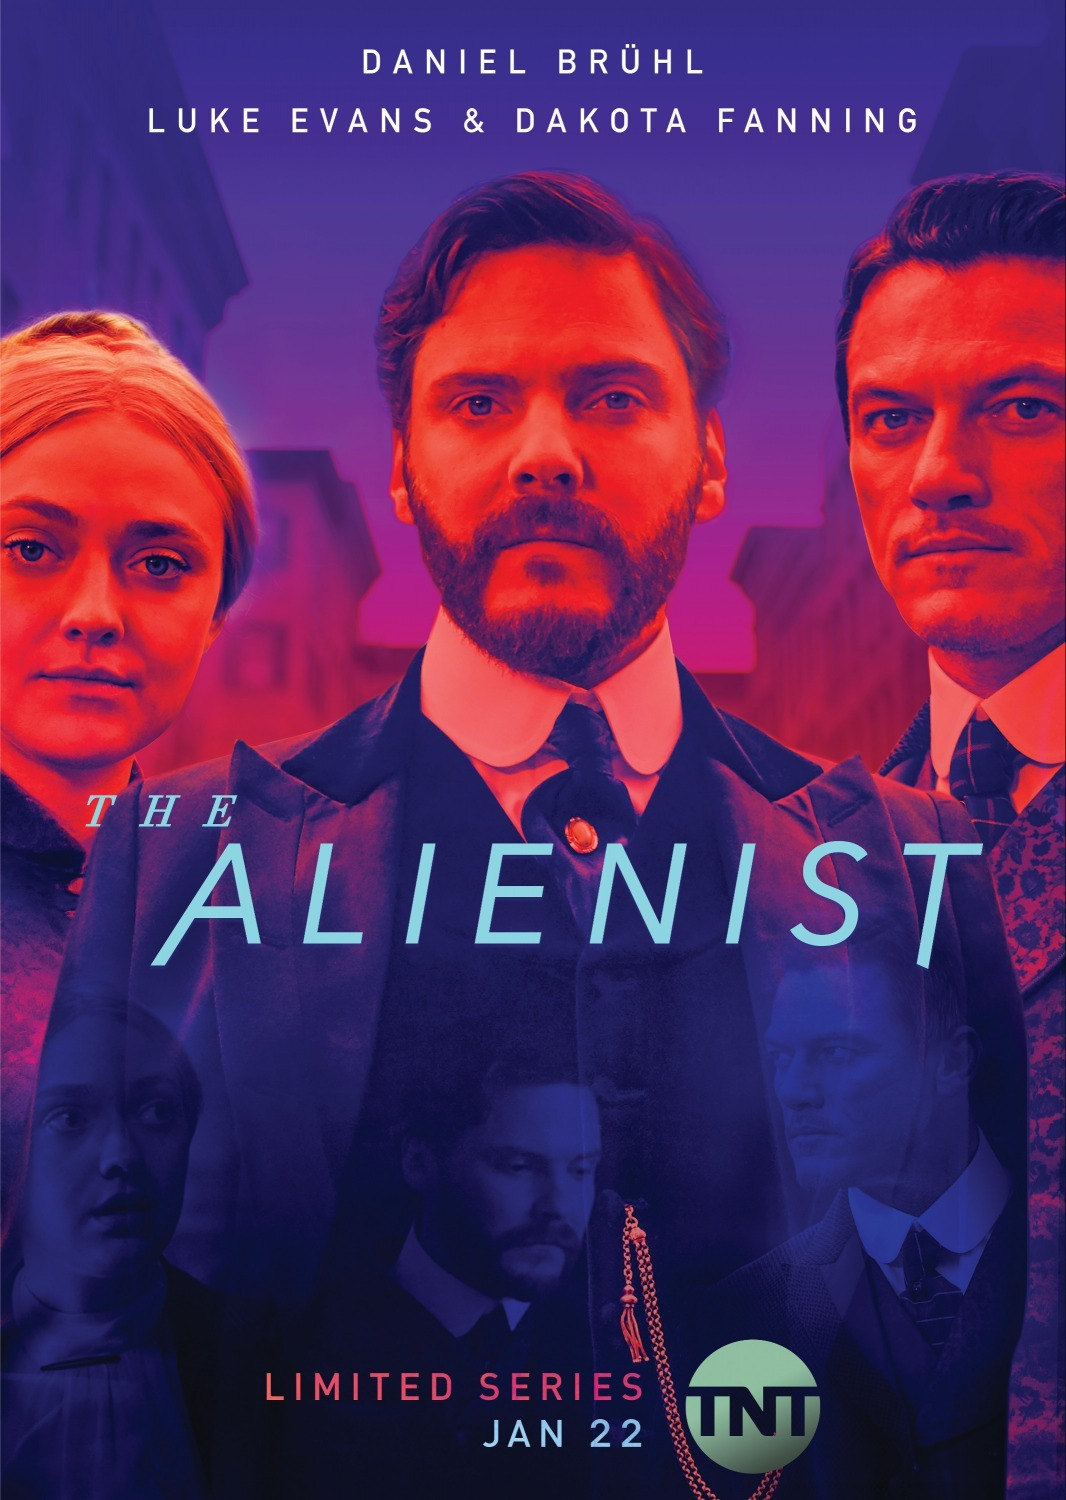 The Alienist S02 2020 Hindi Complete Netflix Web Series 480p HDRip 1.2GB Download